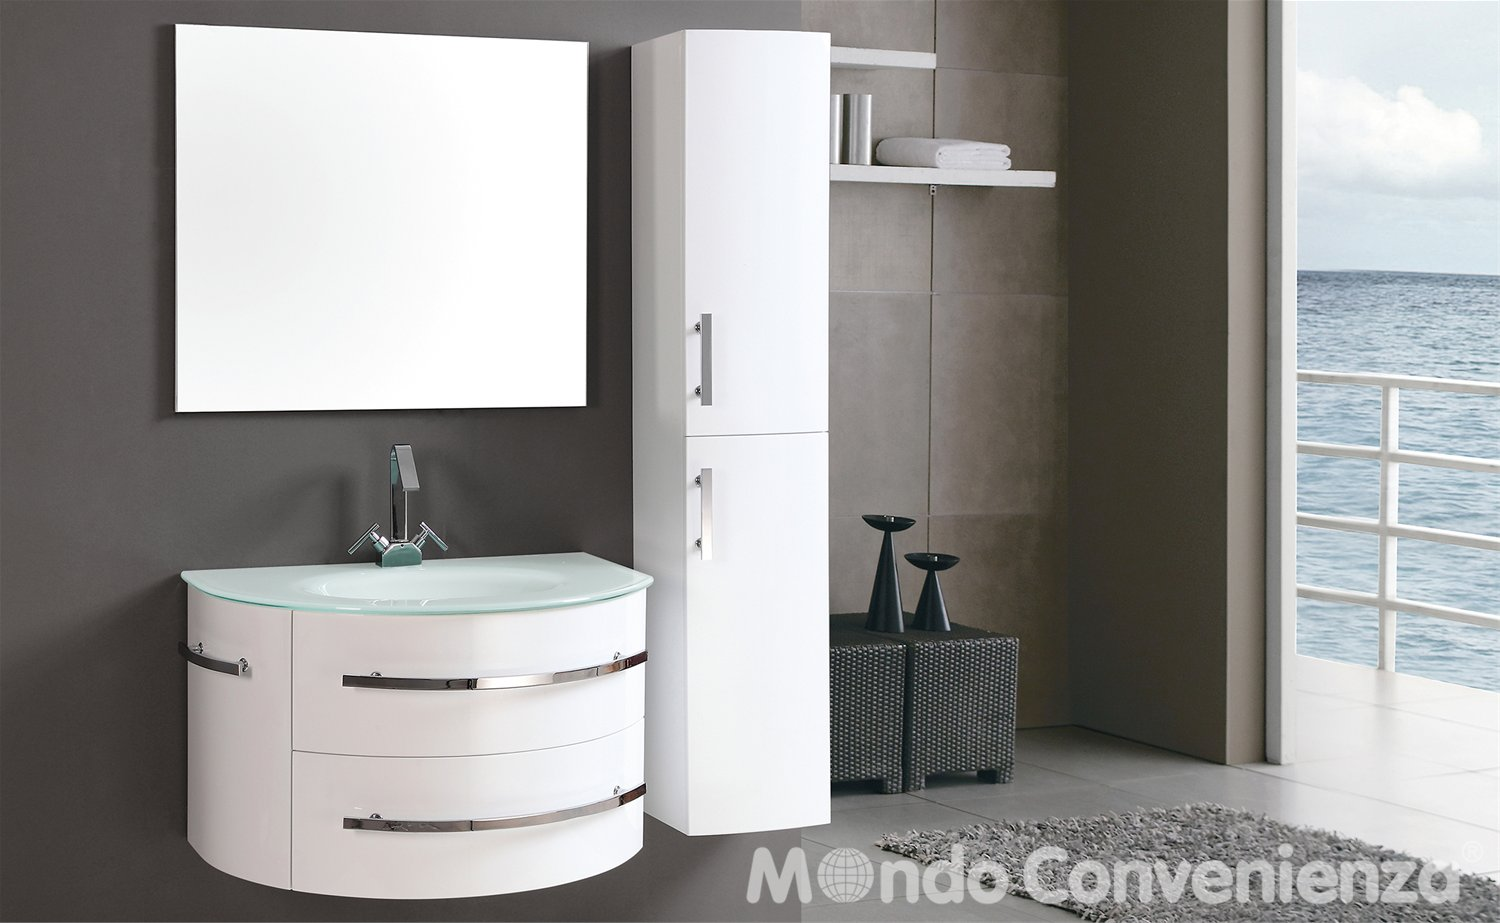 Catalogo mondo convenienza 2013 18 design mon amour - Mondo convenienza mobile bagno ...